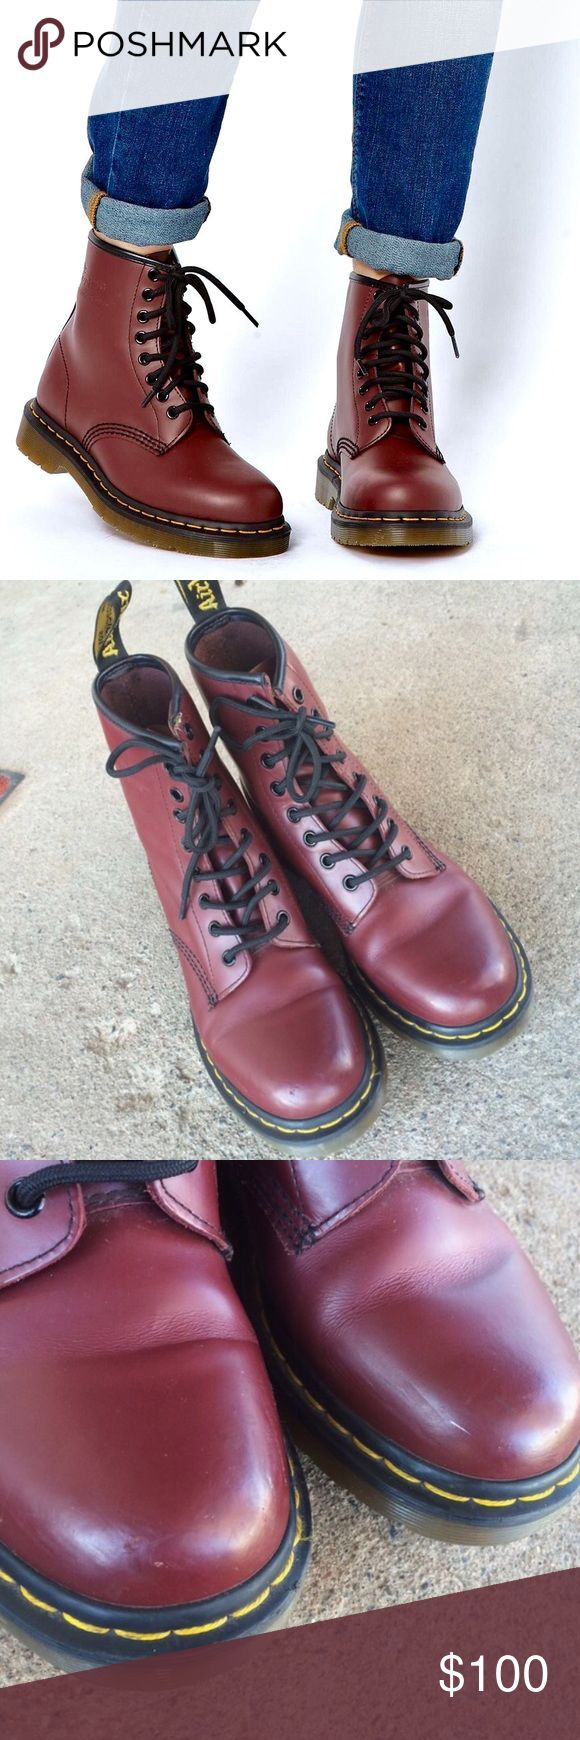 Doc Martens 8-eye 1460 Boots Cherry/burgundy color in the iconic 1460 style. Seriously awesome condition, a couple very minor scuffs. Size 8 US Ladies /6 UK Ladies 💥ALL ITEMS ARE DESCRIBED AS ACCURATELY AS POSSIBLE & ALL SALES ARE FINAL. PLEASE ASK ALL QUESTIONS PRIOR TO PURCHASE, I WILL NOT BE HELD RESPONSIBLE FOR LOST OR DAMAGED PARCELS OR BUYERS DISSATISFACTION💥 Dr. Martens Shoes Combat & Moto Boots